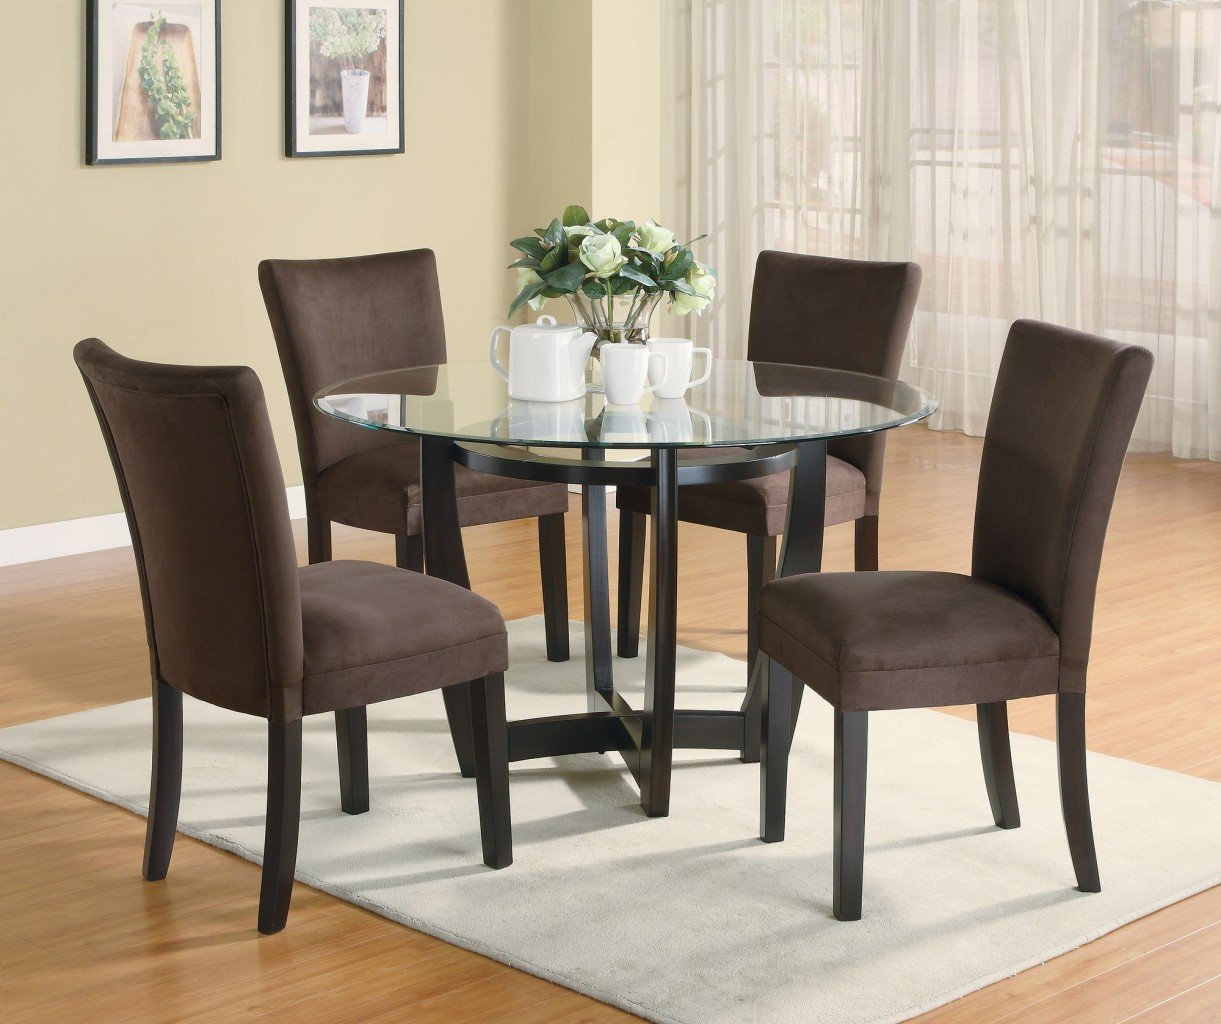 Dining Room Sets With Bench: Cheap Dining Room Table Sets